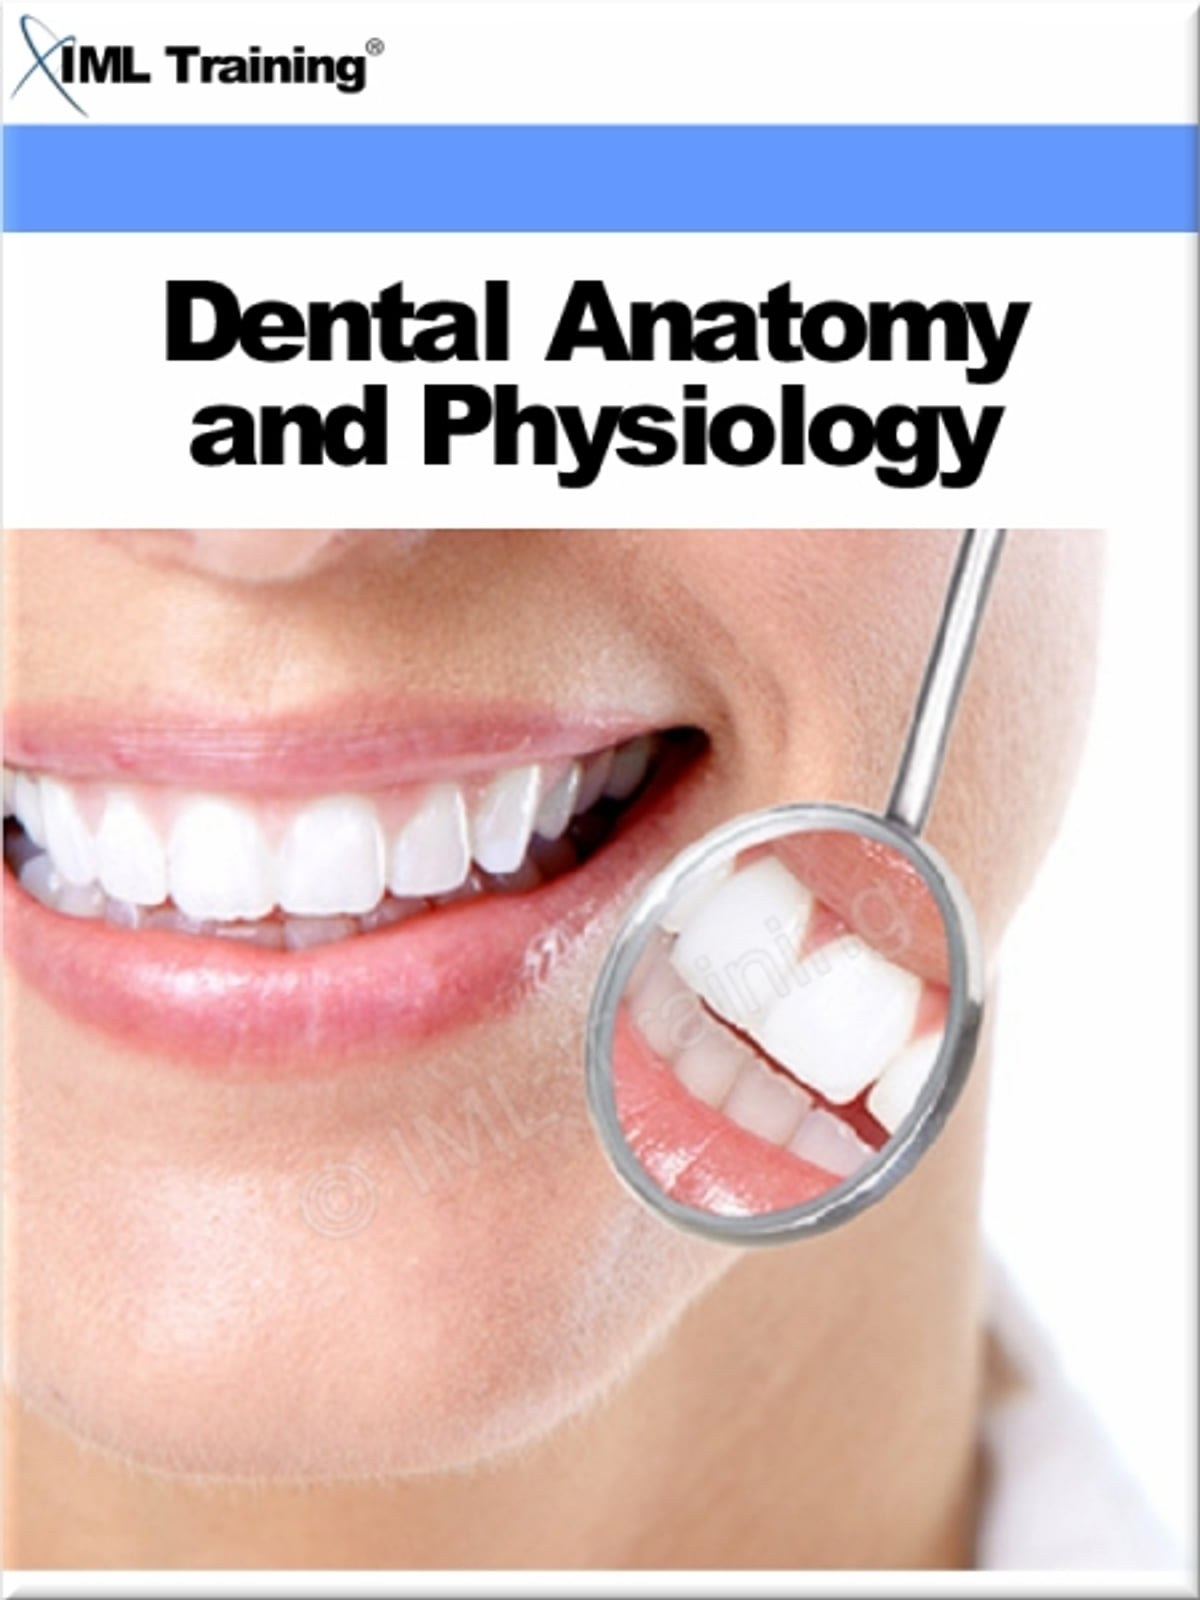 Dental Anatomy and Physiology (Dentistry) eBook by - 9781782580058 ...